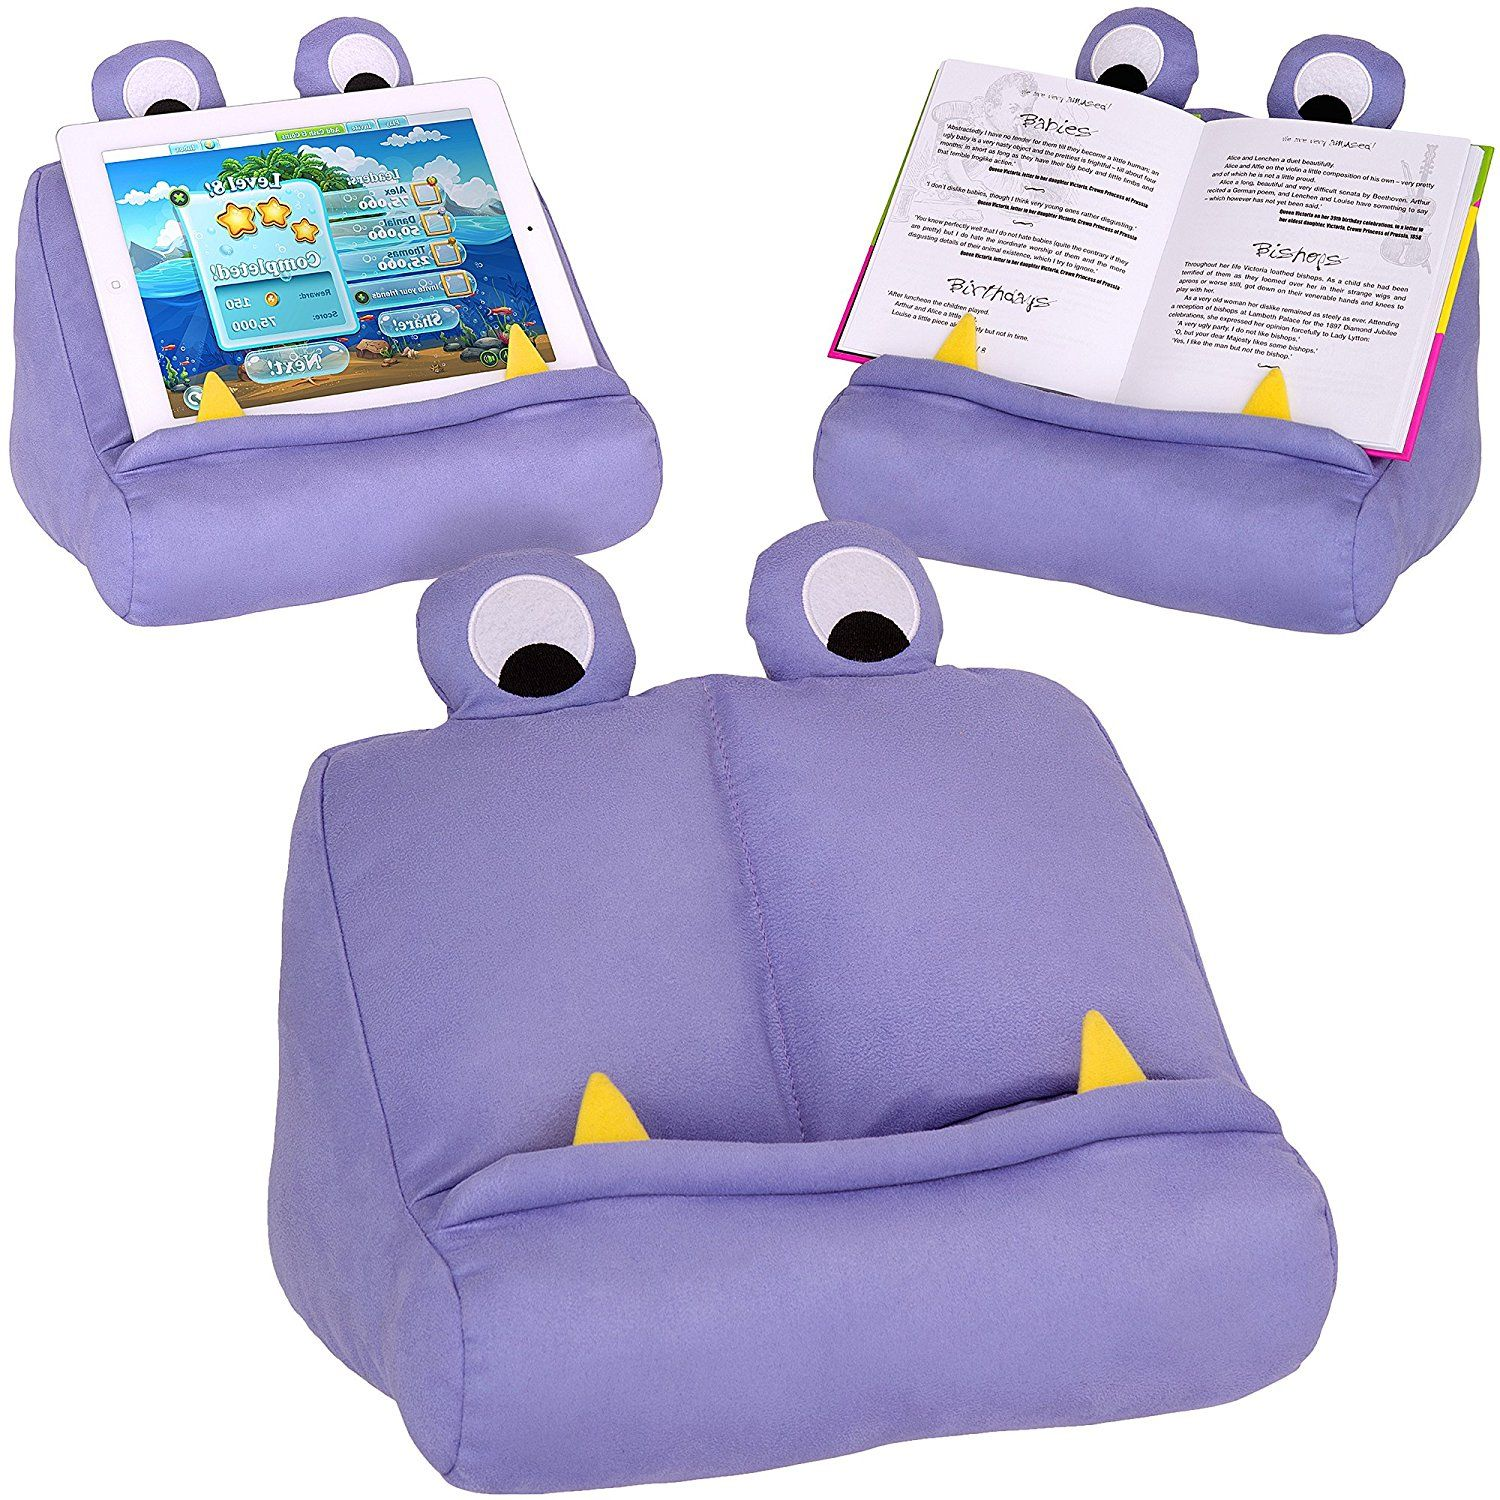 Kids ipad Tablet Holder & Book Stand * Fun Purple Book